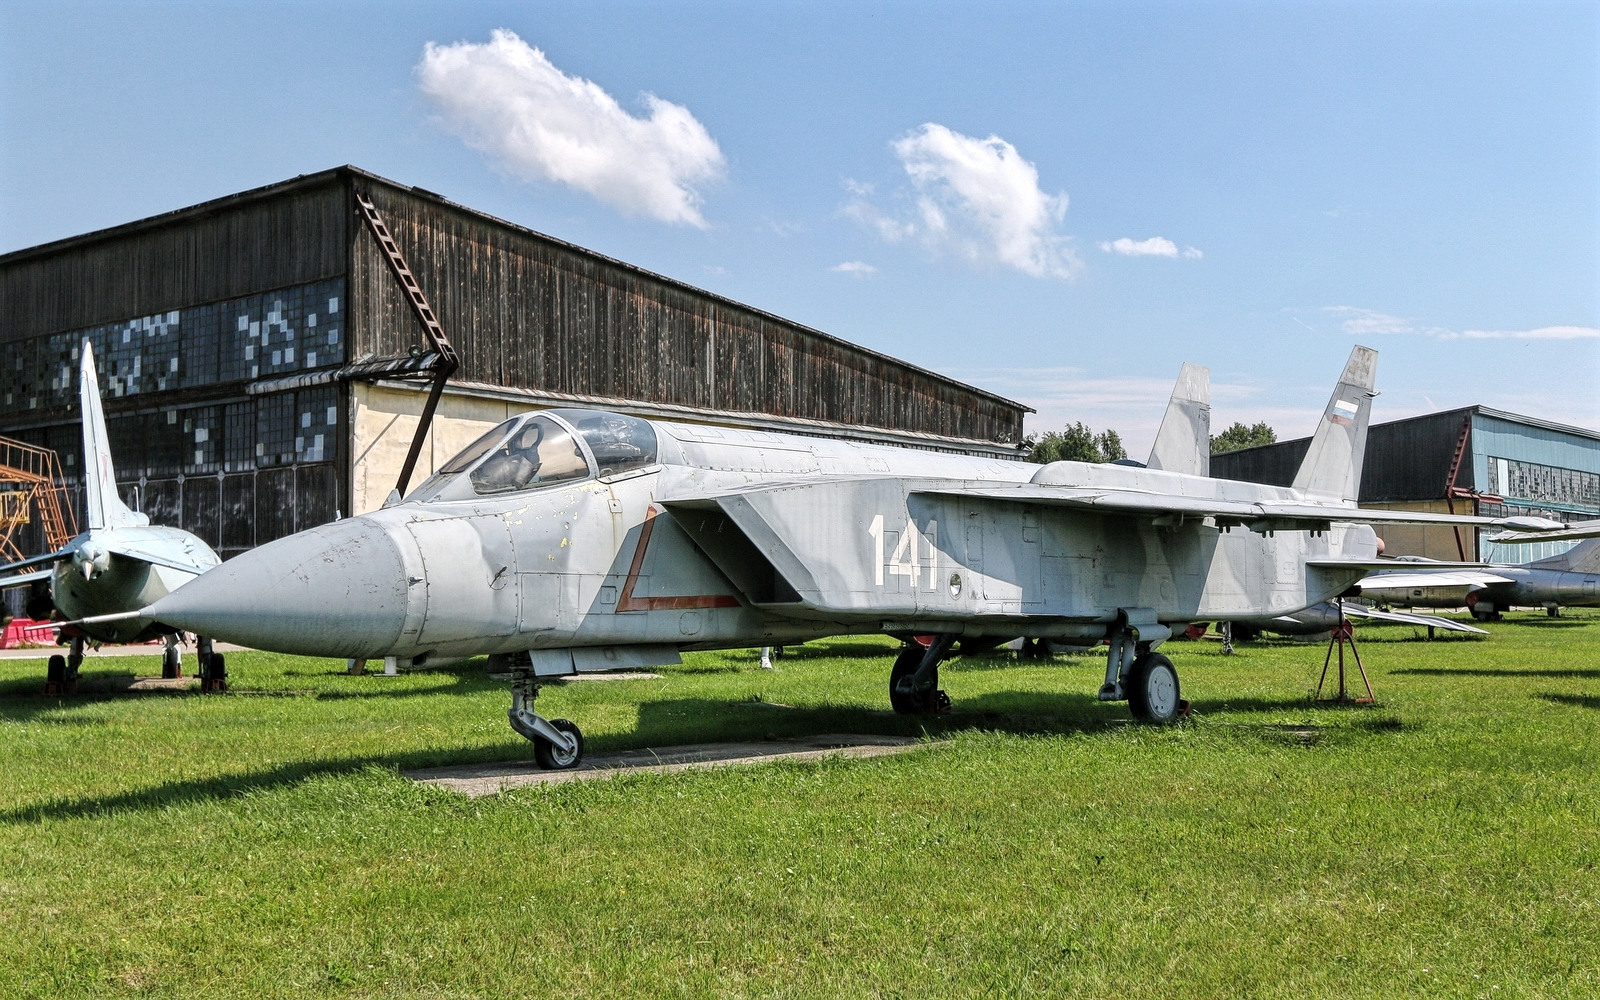 Yakovlev Yak-141 VTOL Supersonic Jet Fighter